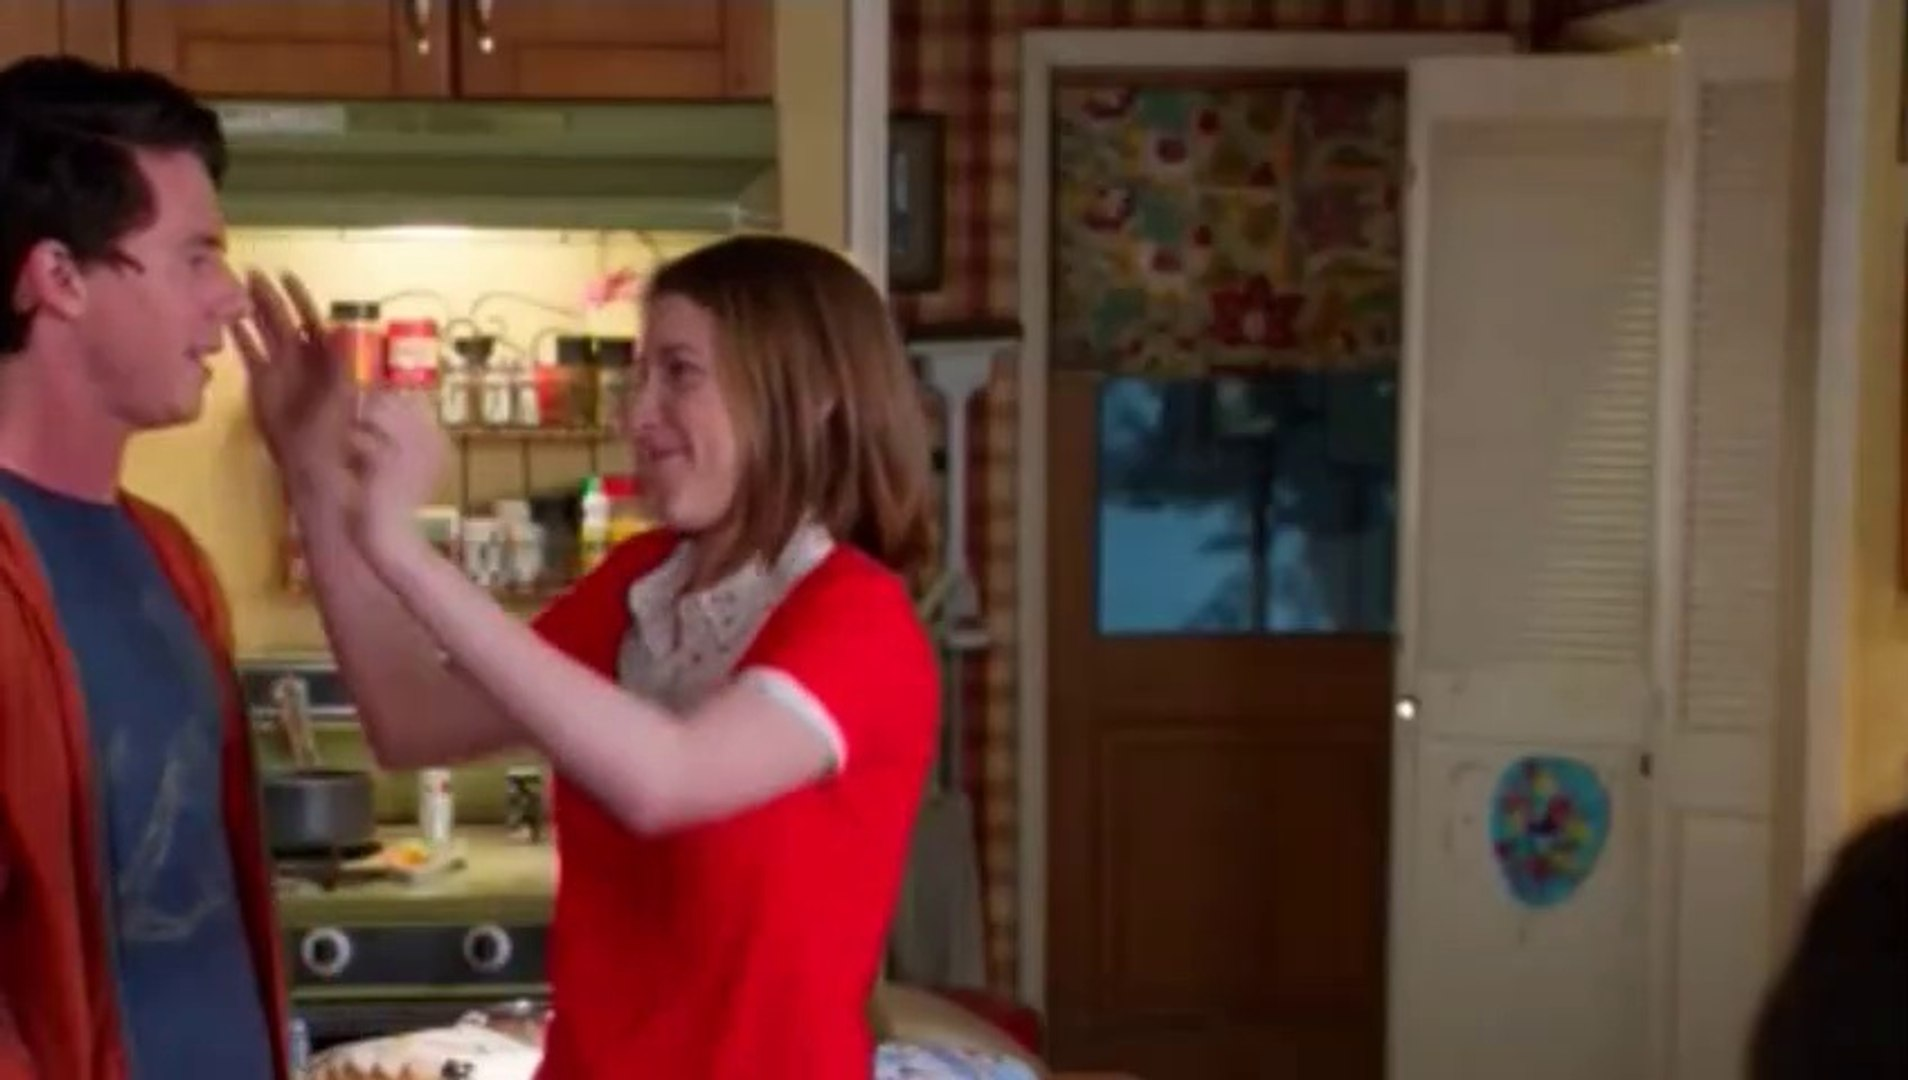 The Middle - S9 E24 - A Heck of a Ride (1) - May 24, 2018 -- The Middle 9X24 -- The Middle 5-23-2018